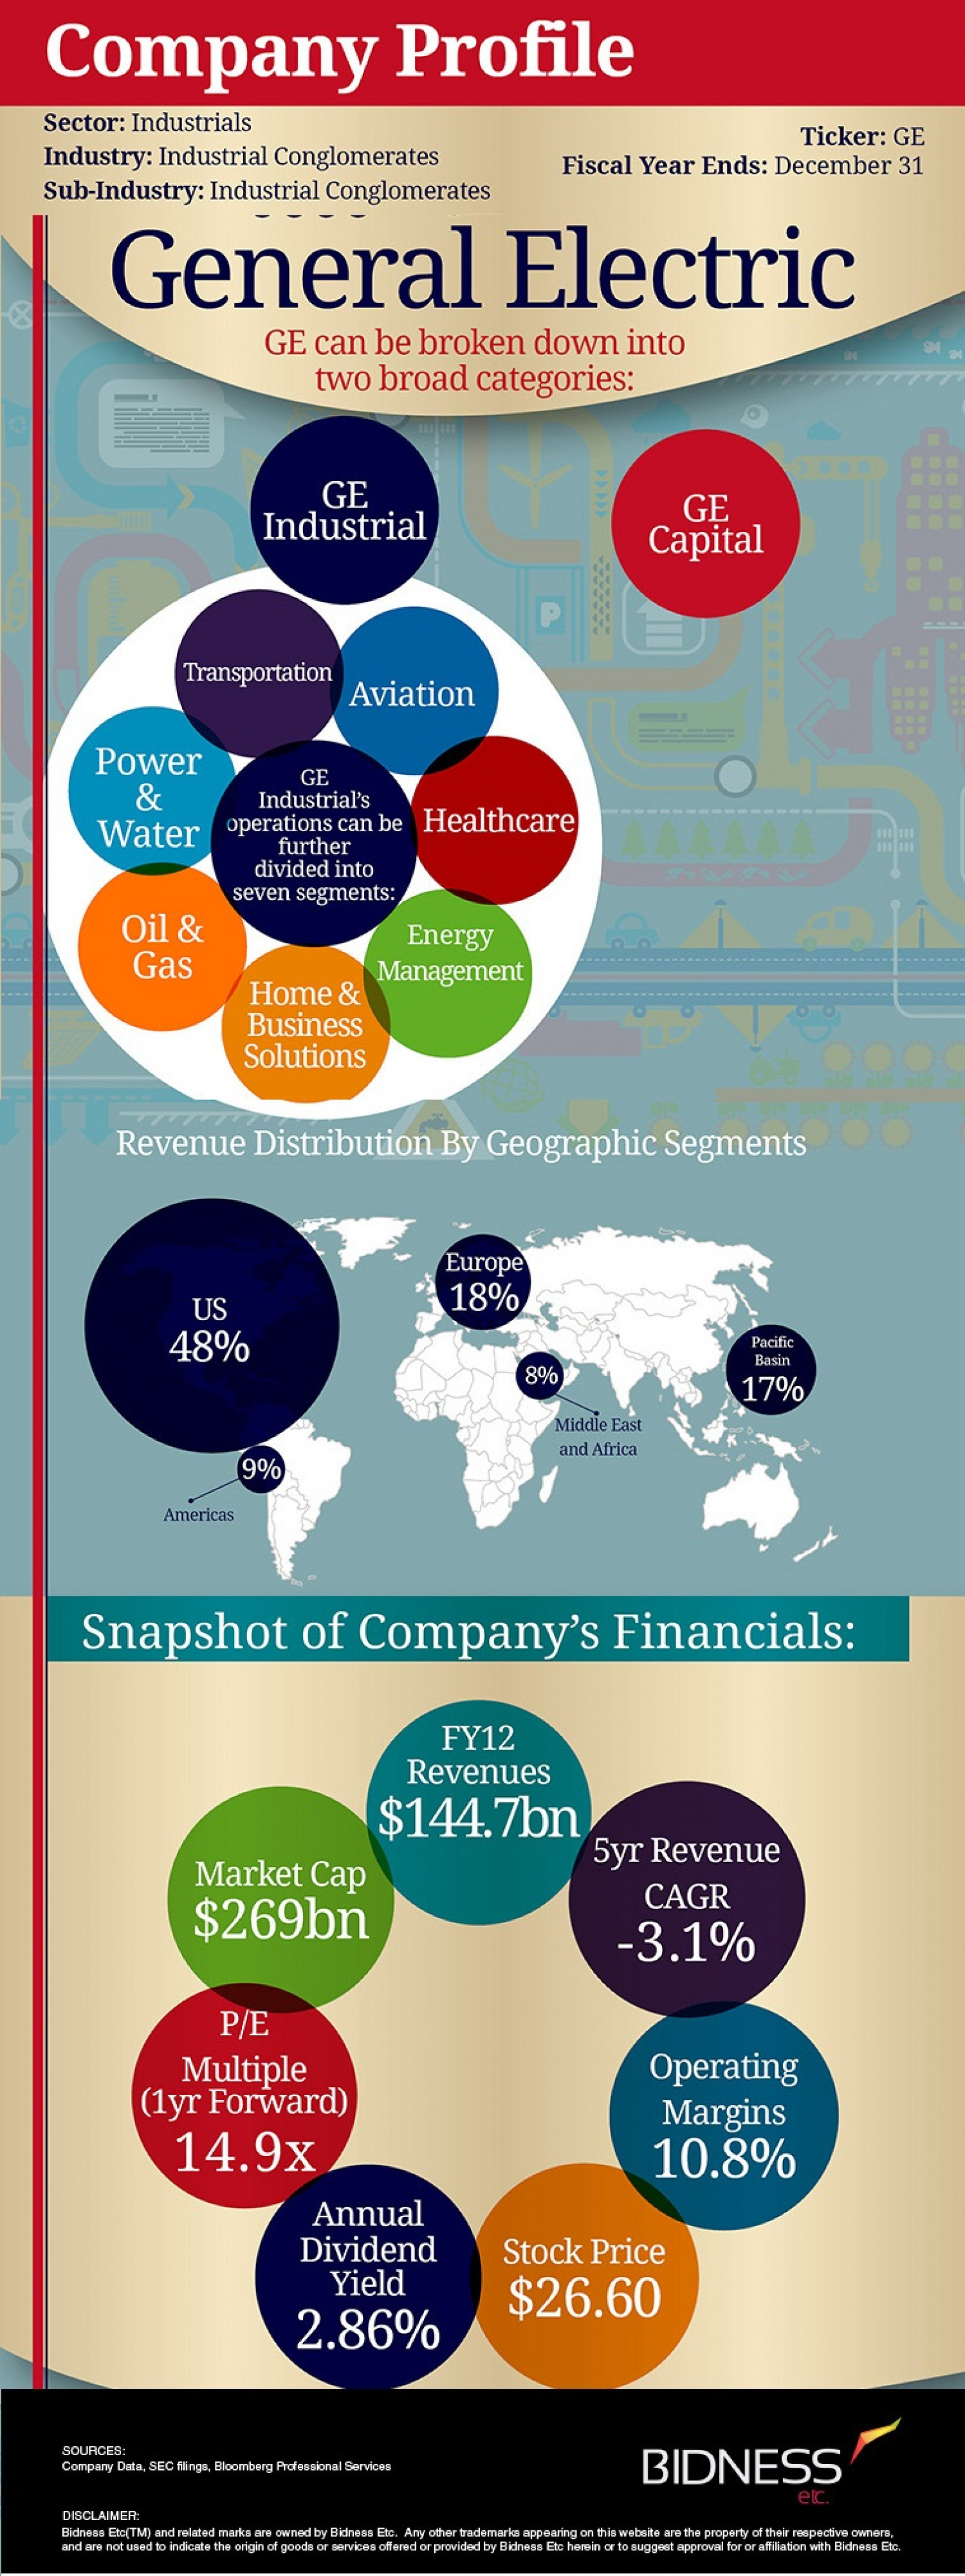 General Electric Company Description Infographic